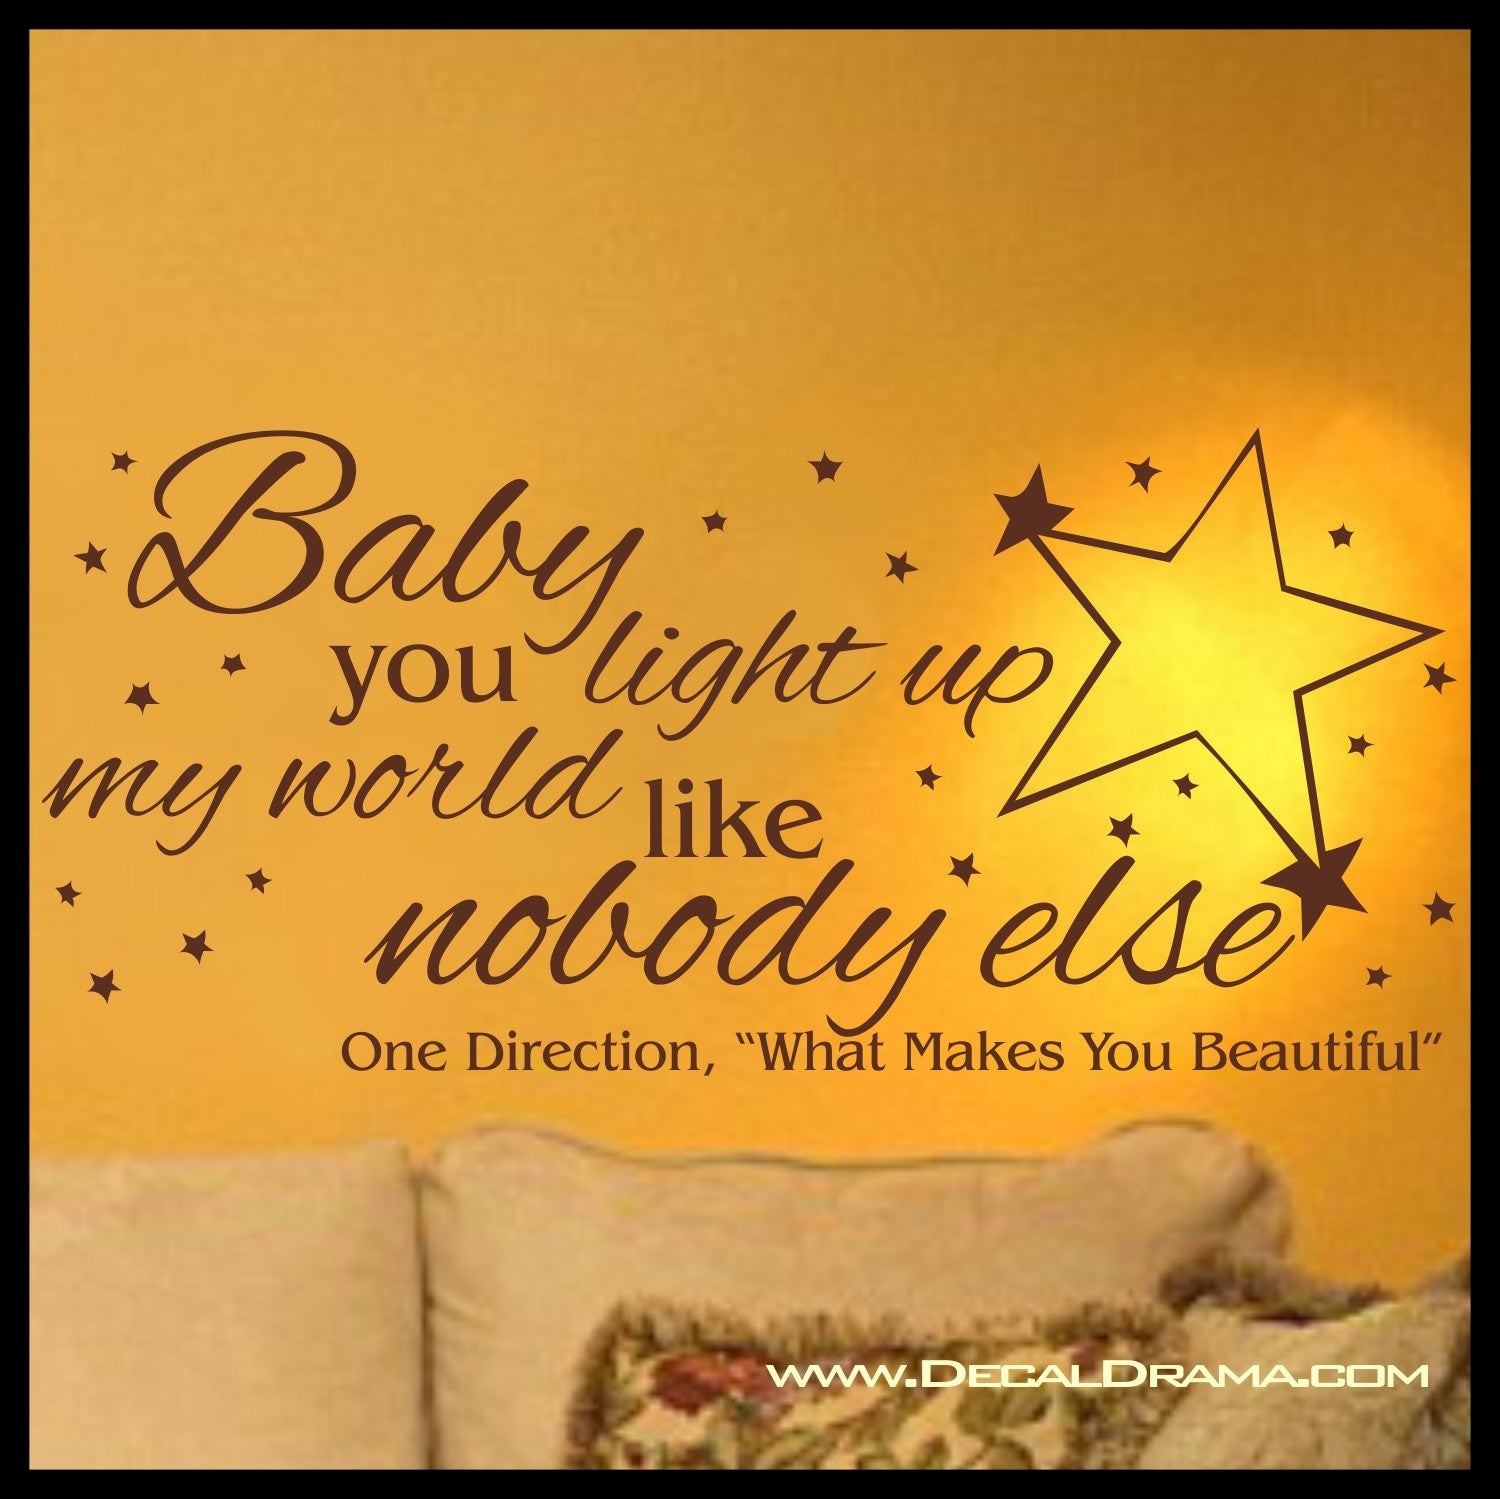 Baby You Light Up My World Like Nobody Else, One Direction What Makes You Beautiful lyrics Vinyl Wall Decal